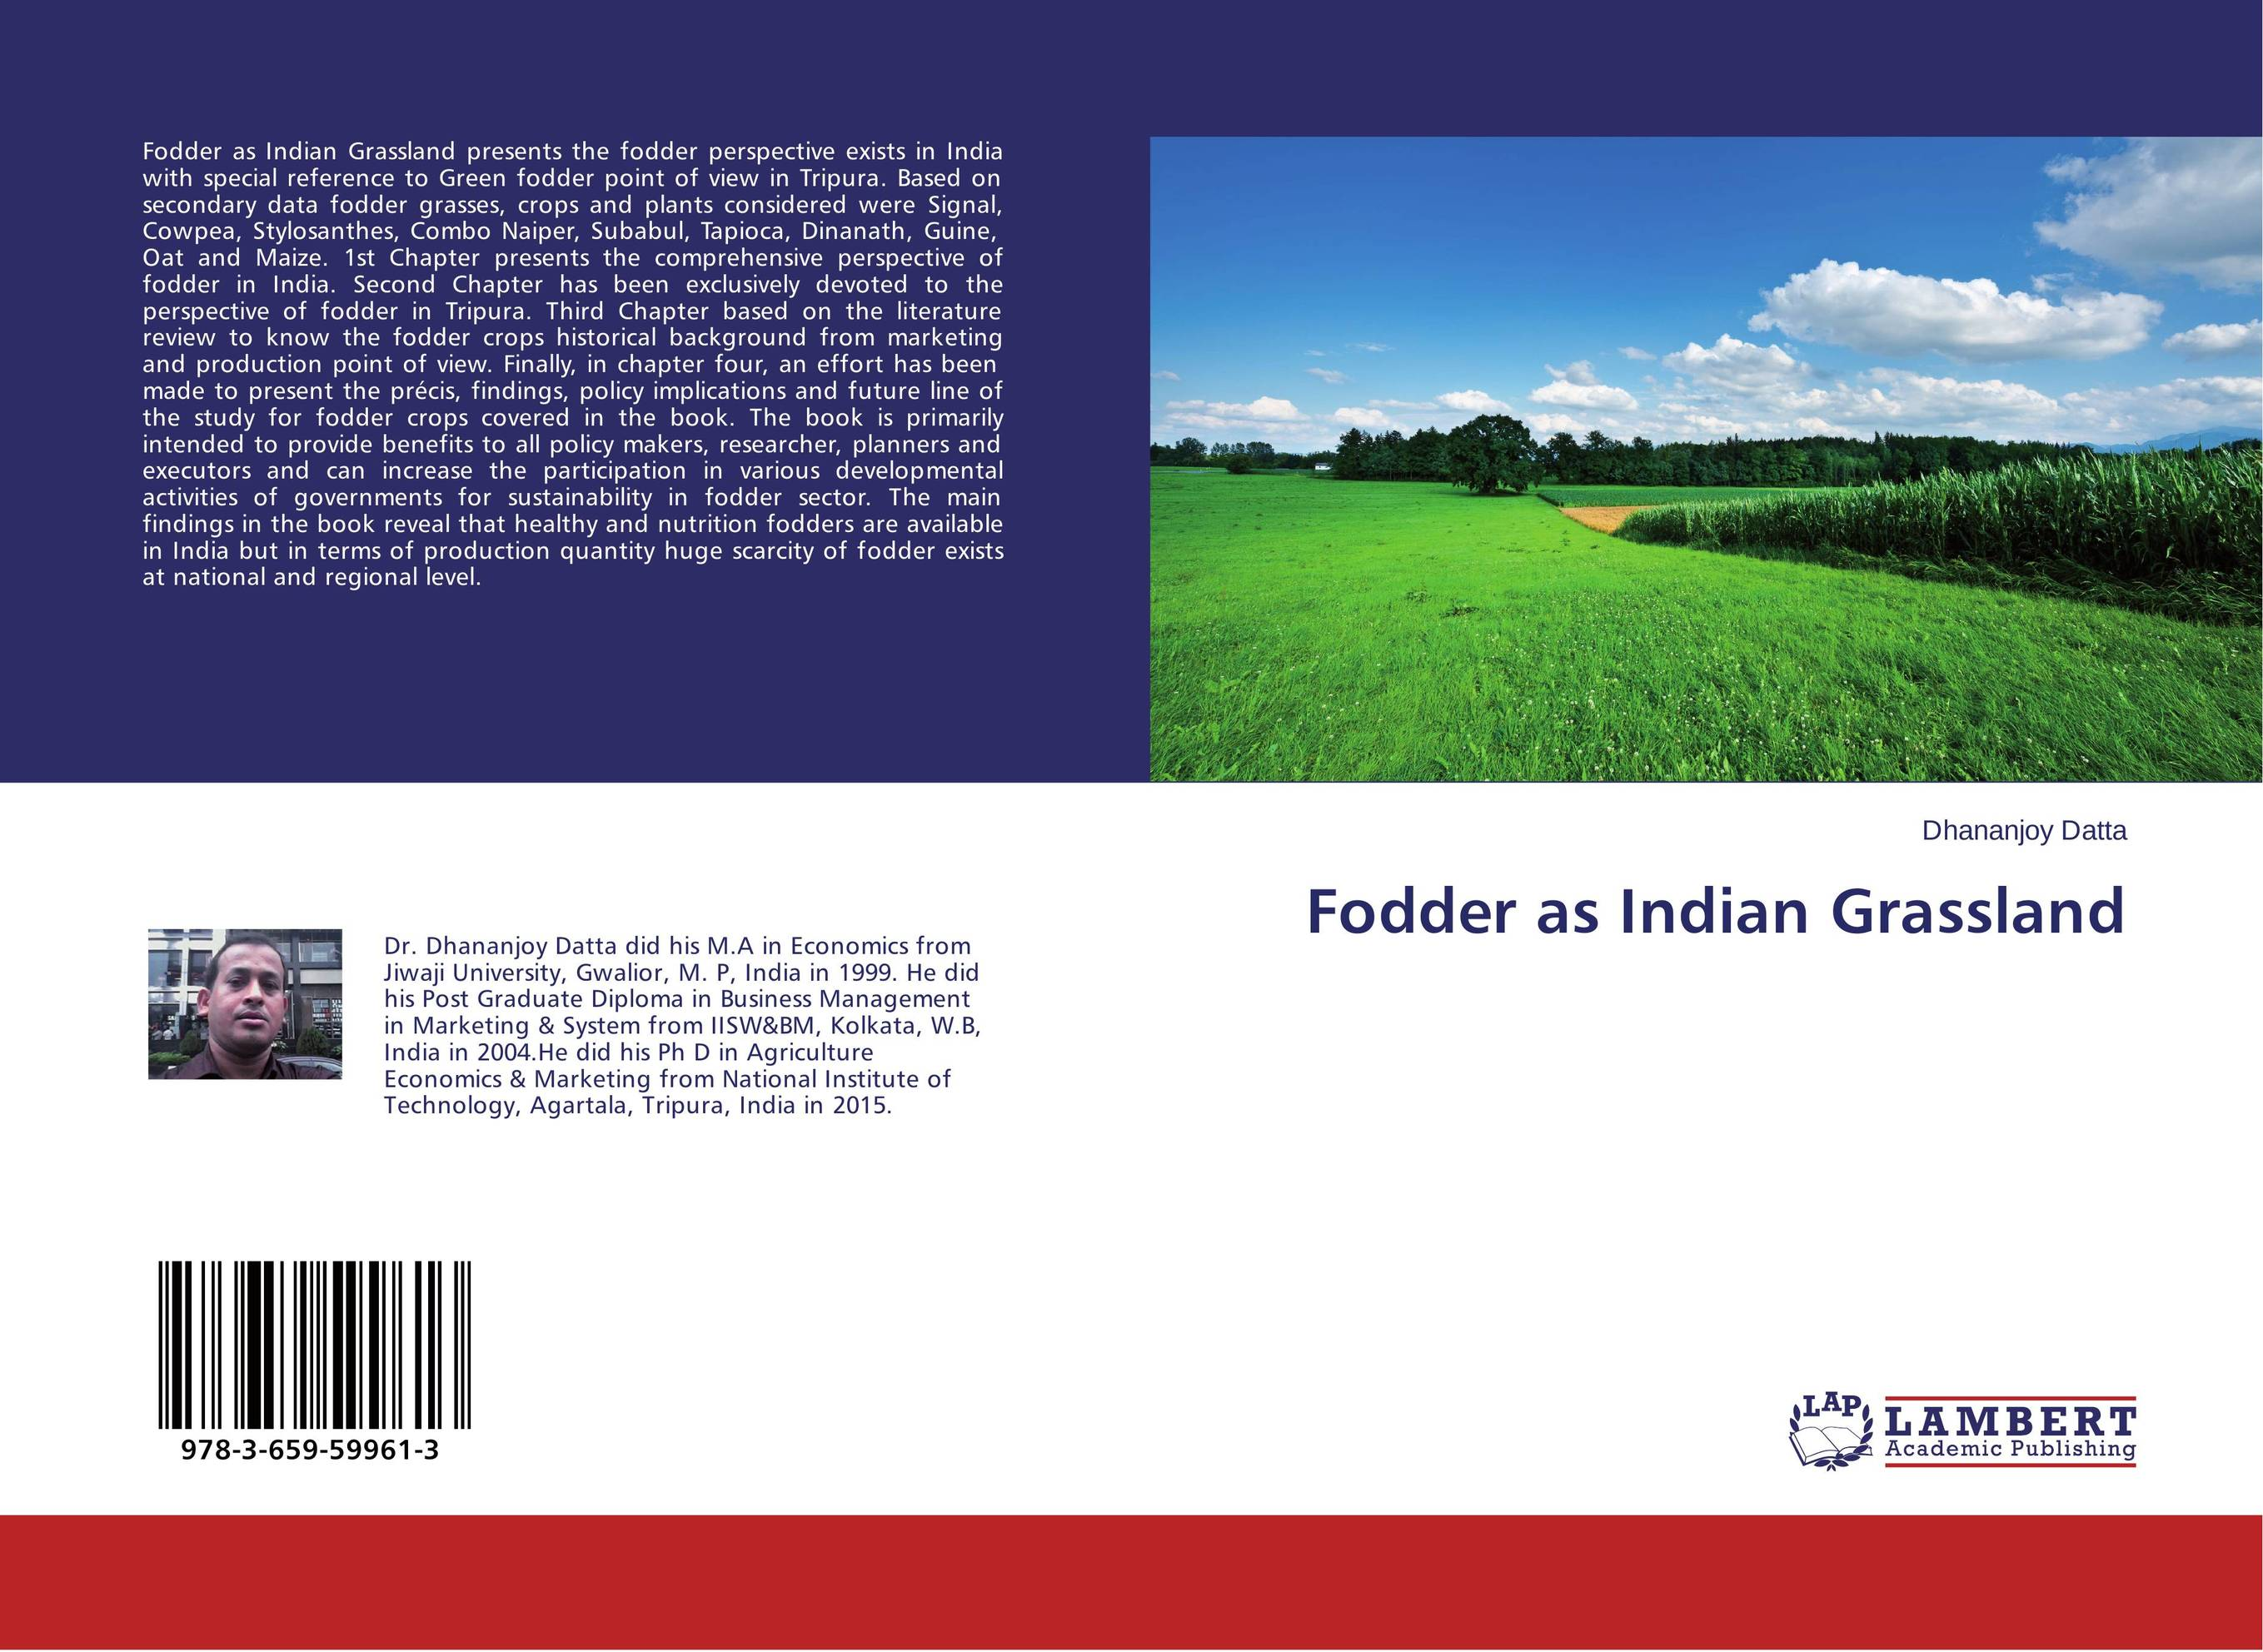 Fodder as Indian Grassland